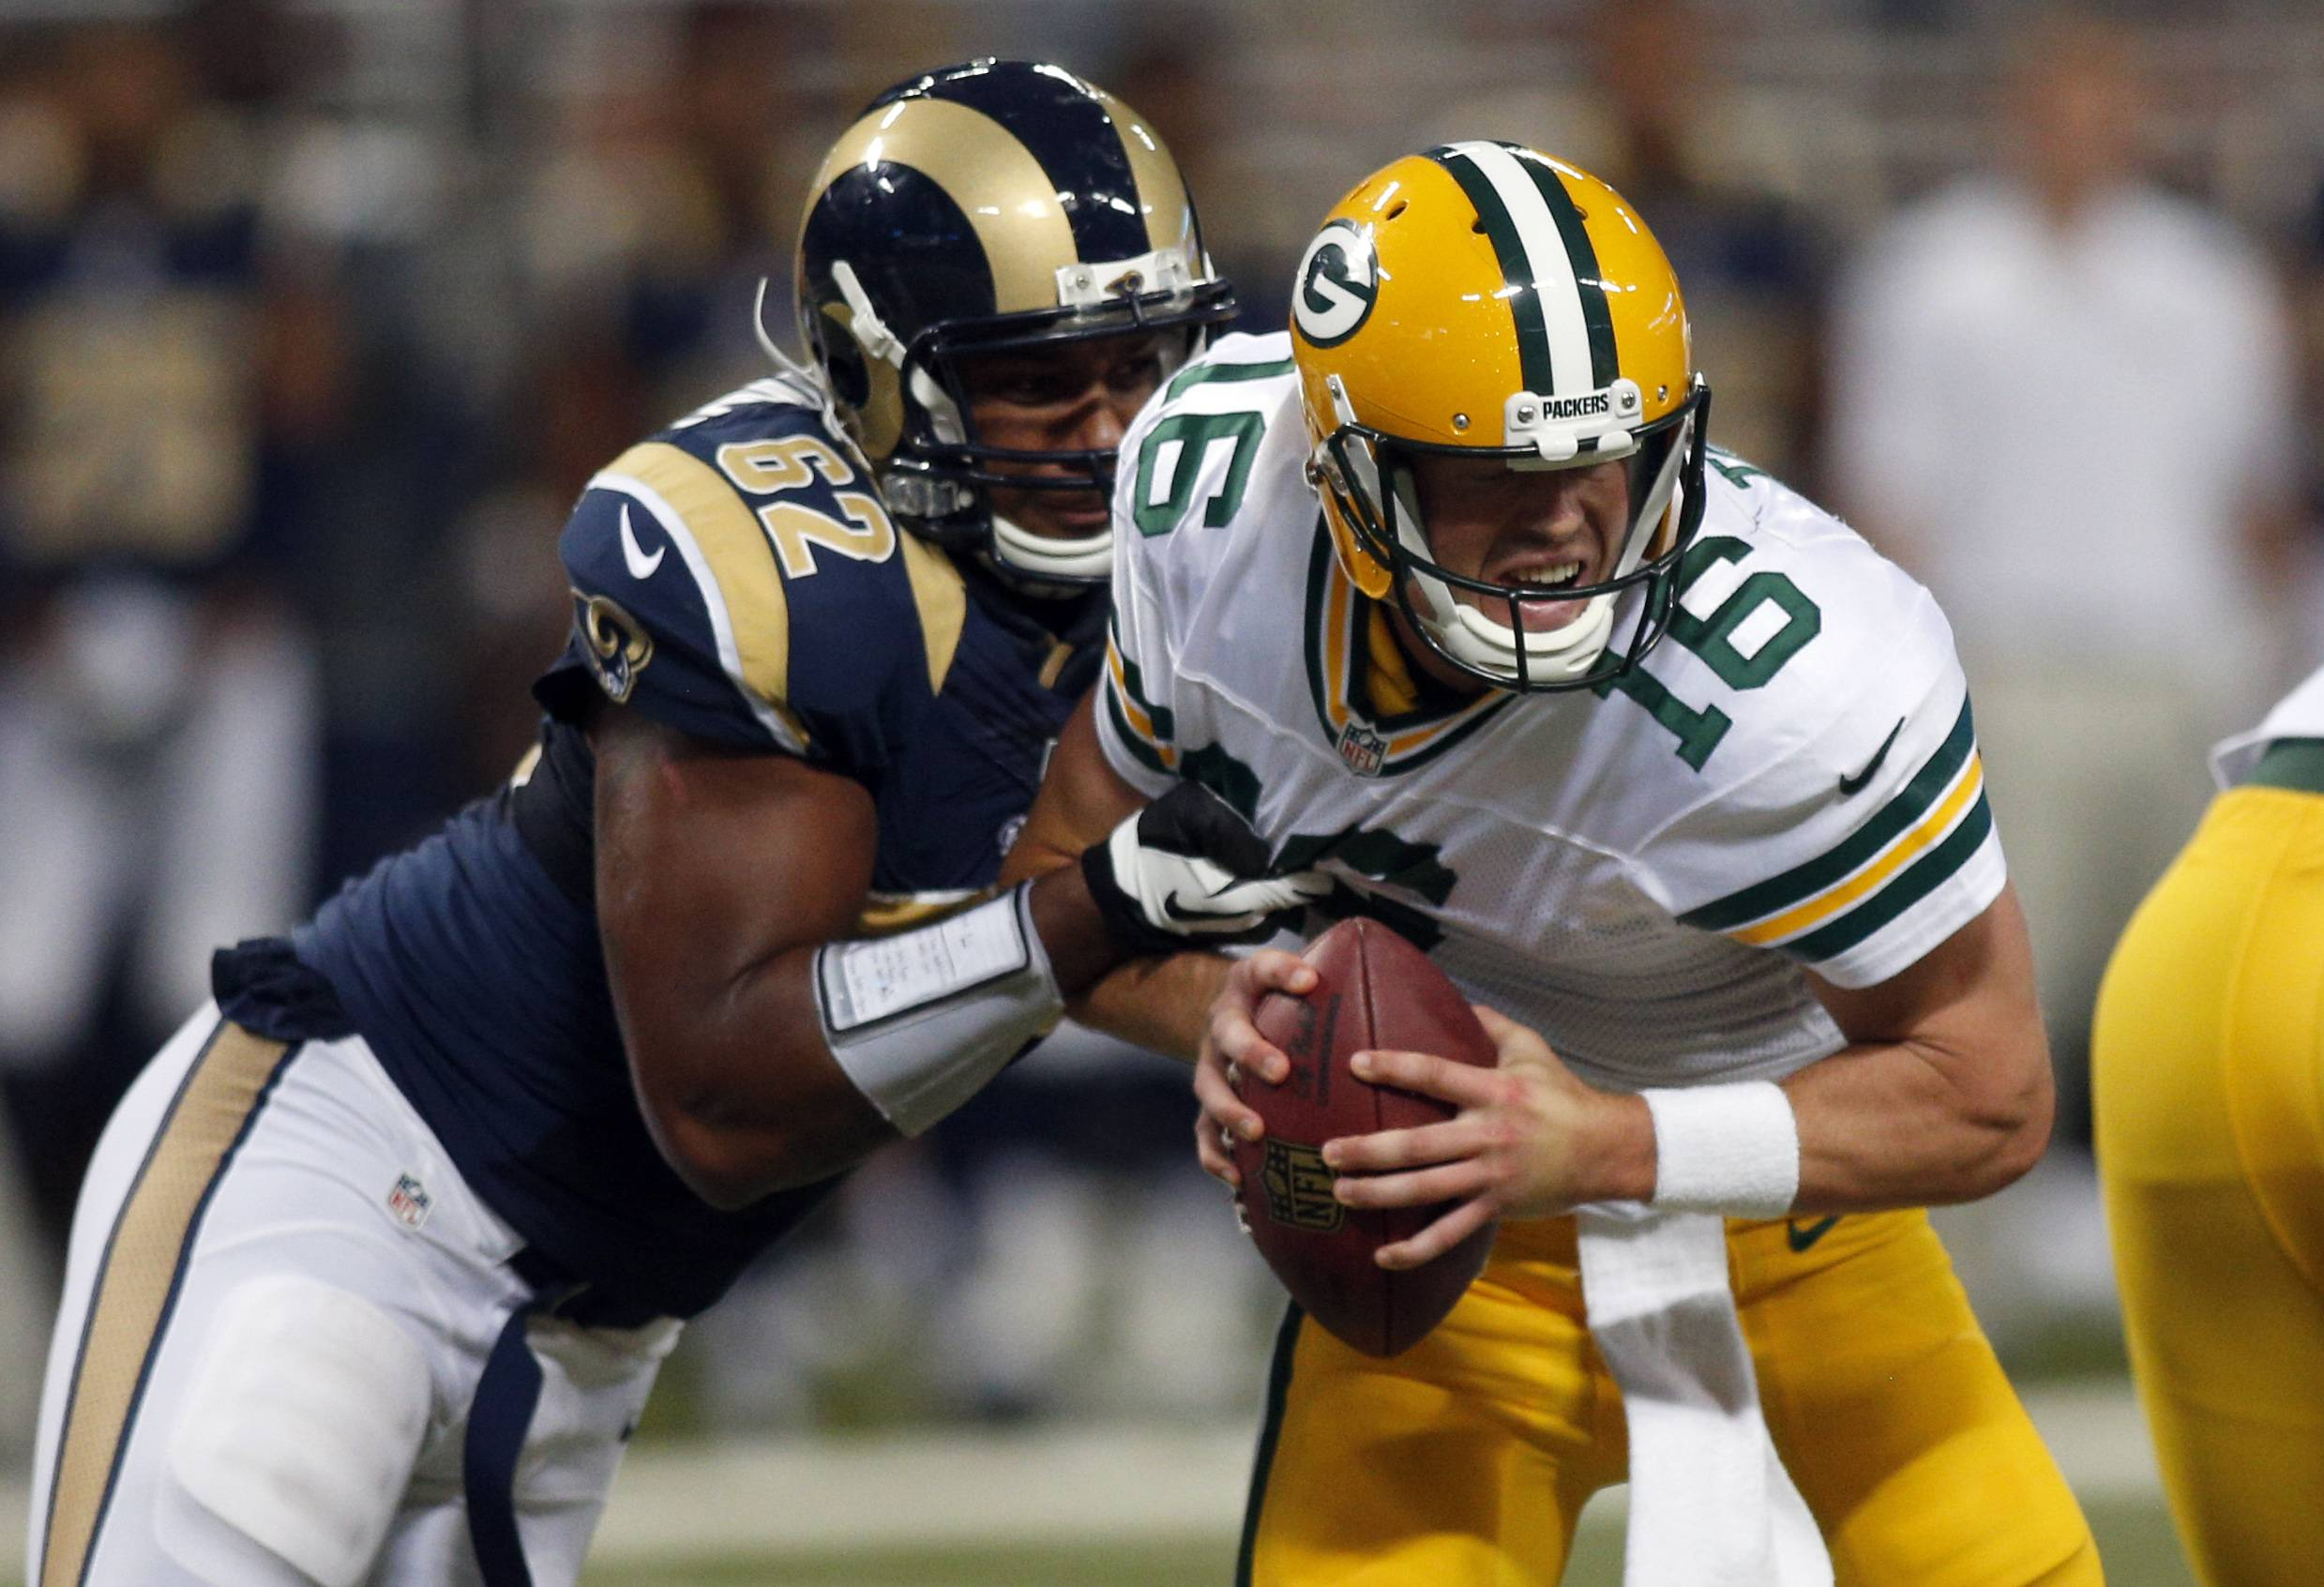 Green Bay Packers quarterback and Fremd alumni Scott Tolzien, right, is sacked for a 1-yard loss by St. Louis Rams defensive tackle Ethan Wesbrooks during Saturday's preseason game in St. Louis. The Packers won 21-7.